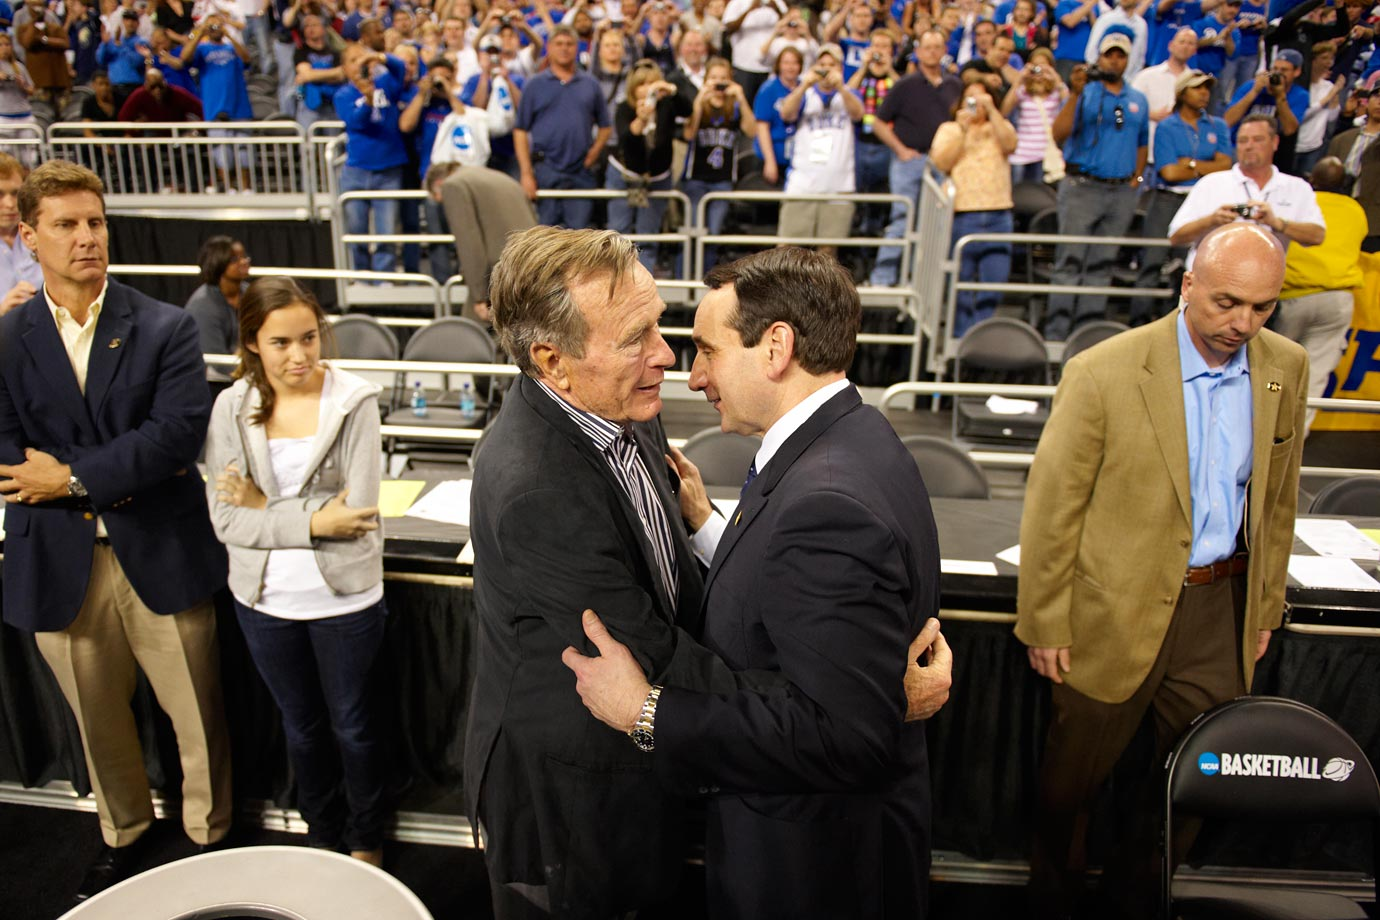 Former President George H.W. Bush congratulates Mike Krzyzewski after Duke defeated Baylor, 61-59, in the 2010 South Regional Finals.